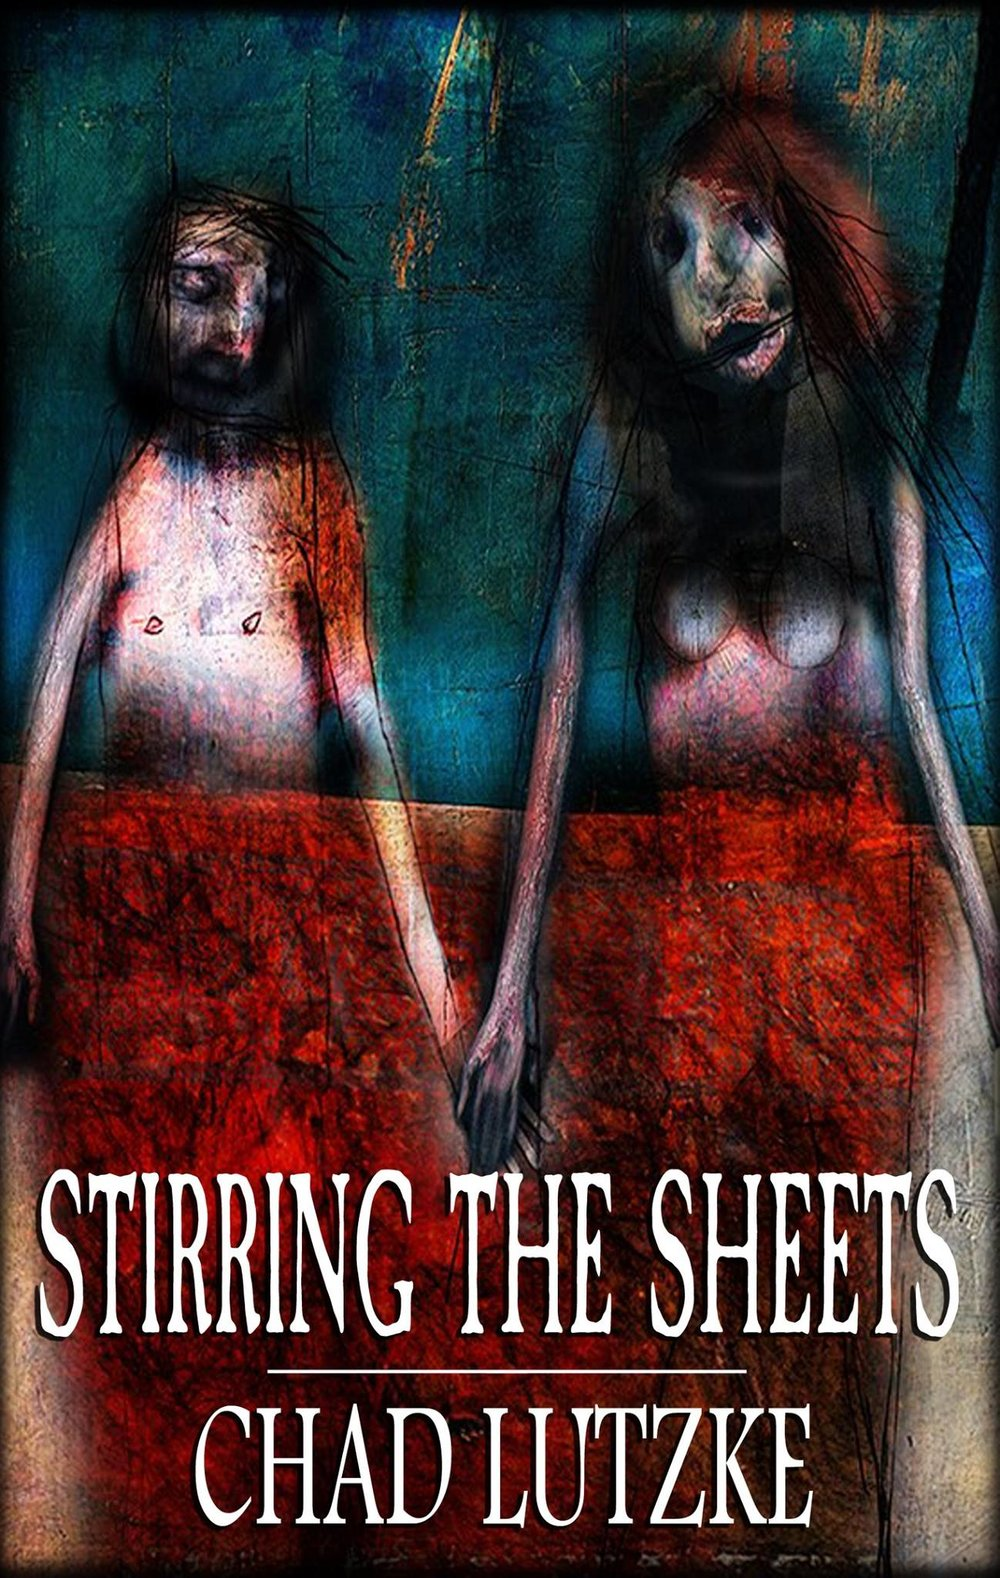 Stirring the Sheets_Chad Lutzke.jpg